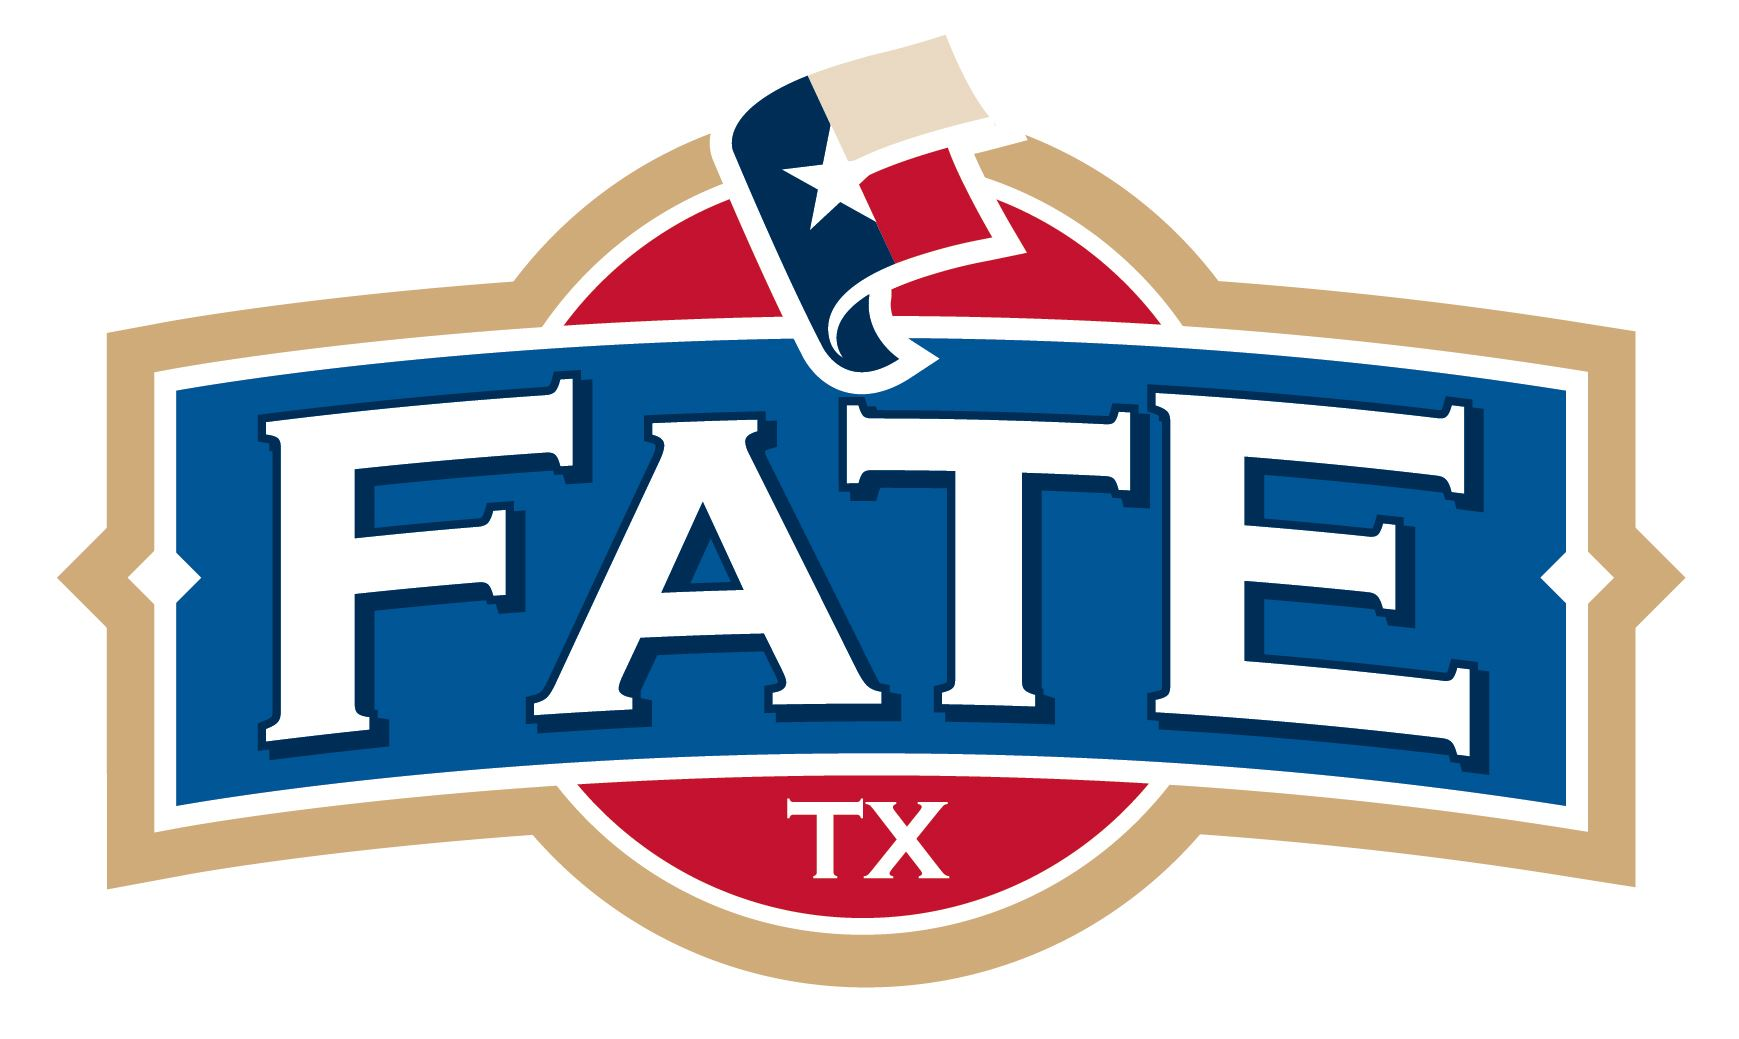 CITY OF FATE LOGO